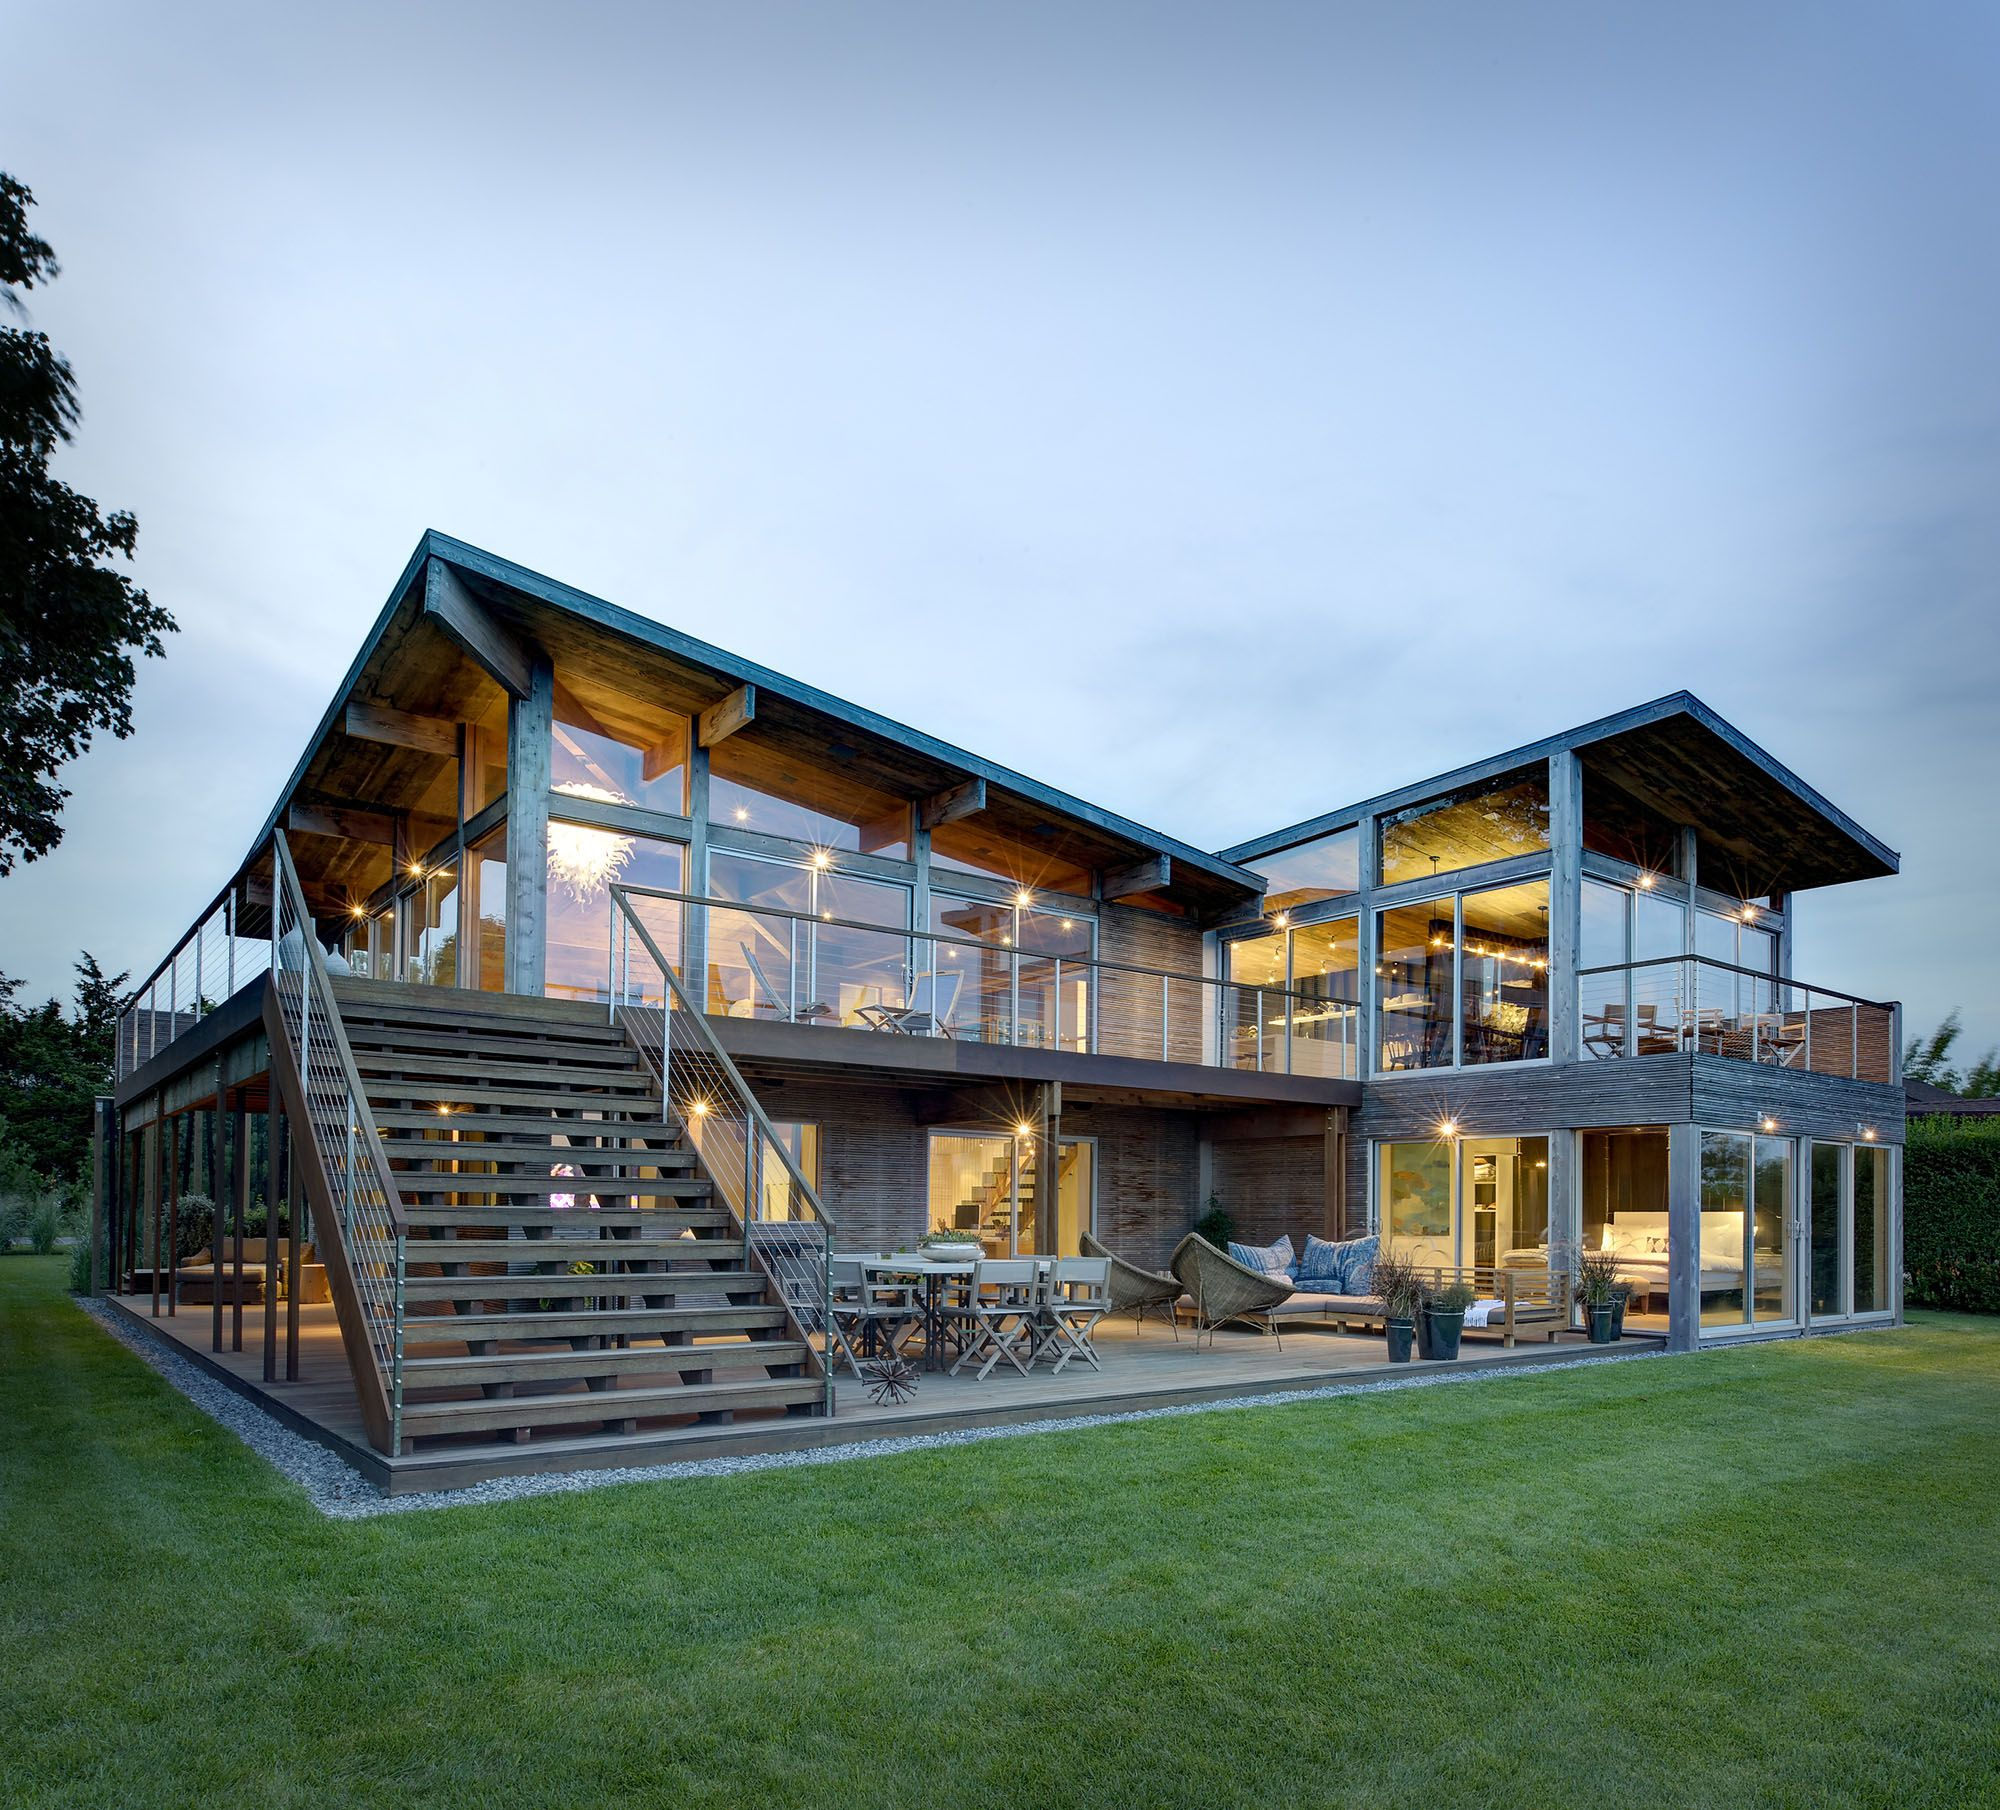 Hurricane-Proof Wood & Steel Waterfront Home